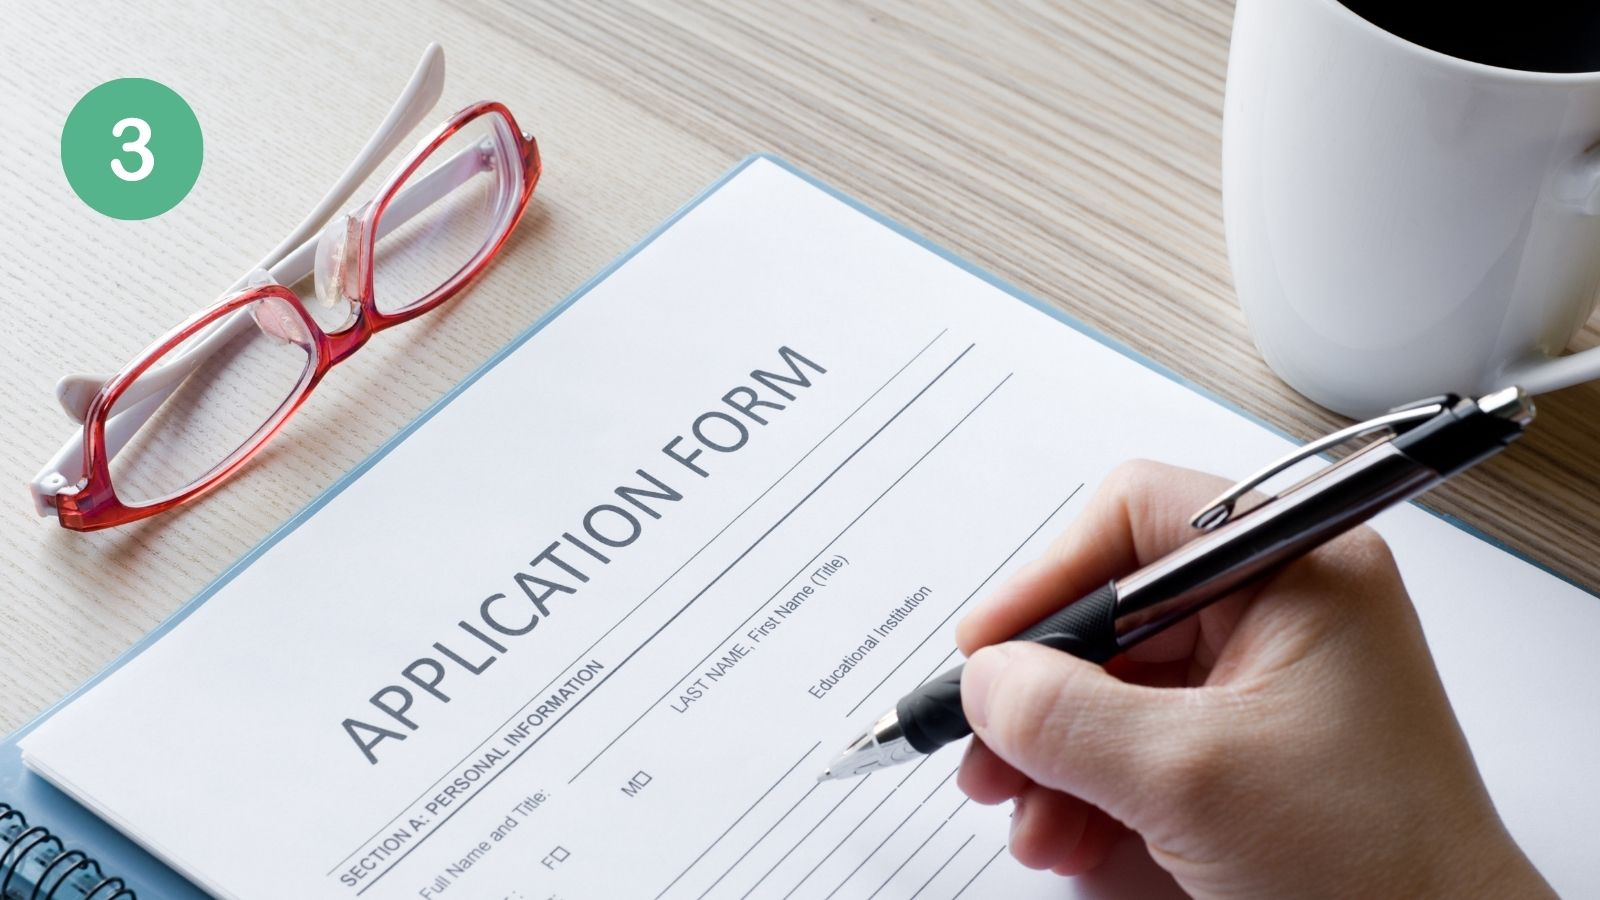 philippine national id application form step 3